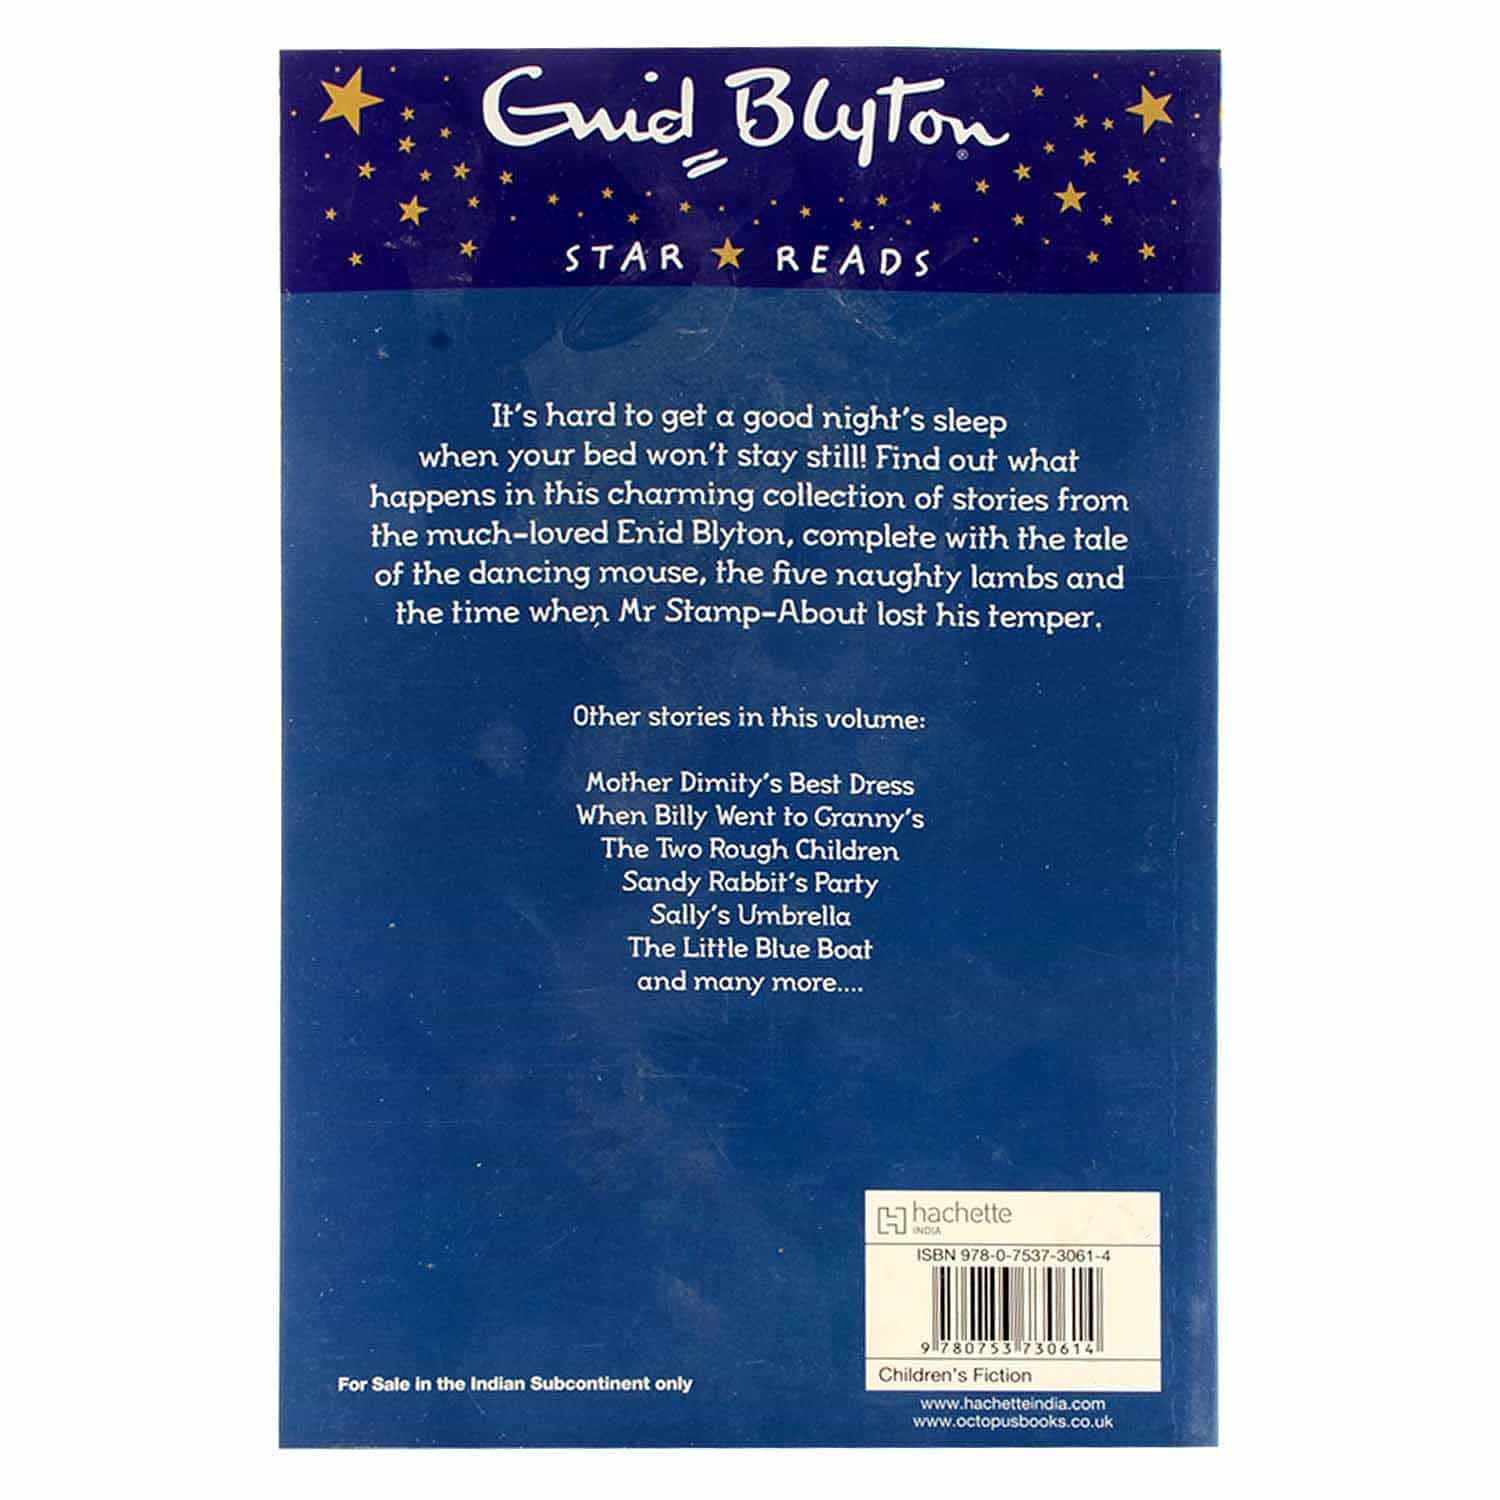 Enid Blyton - The Bed That Ran Away and Other Stories